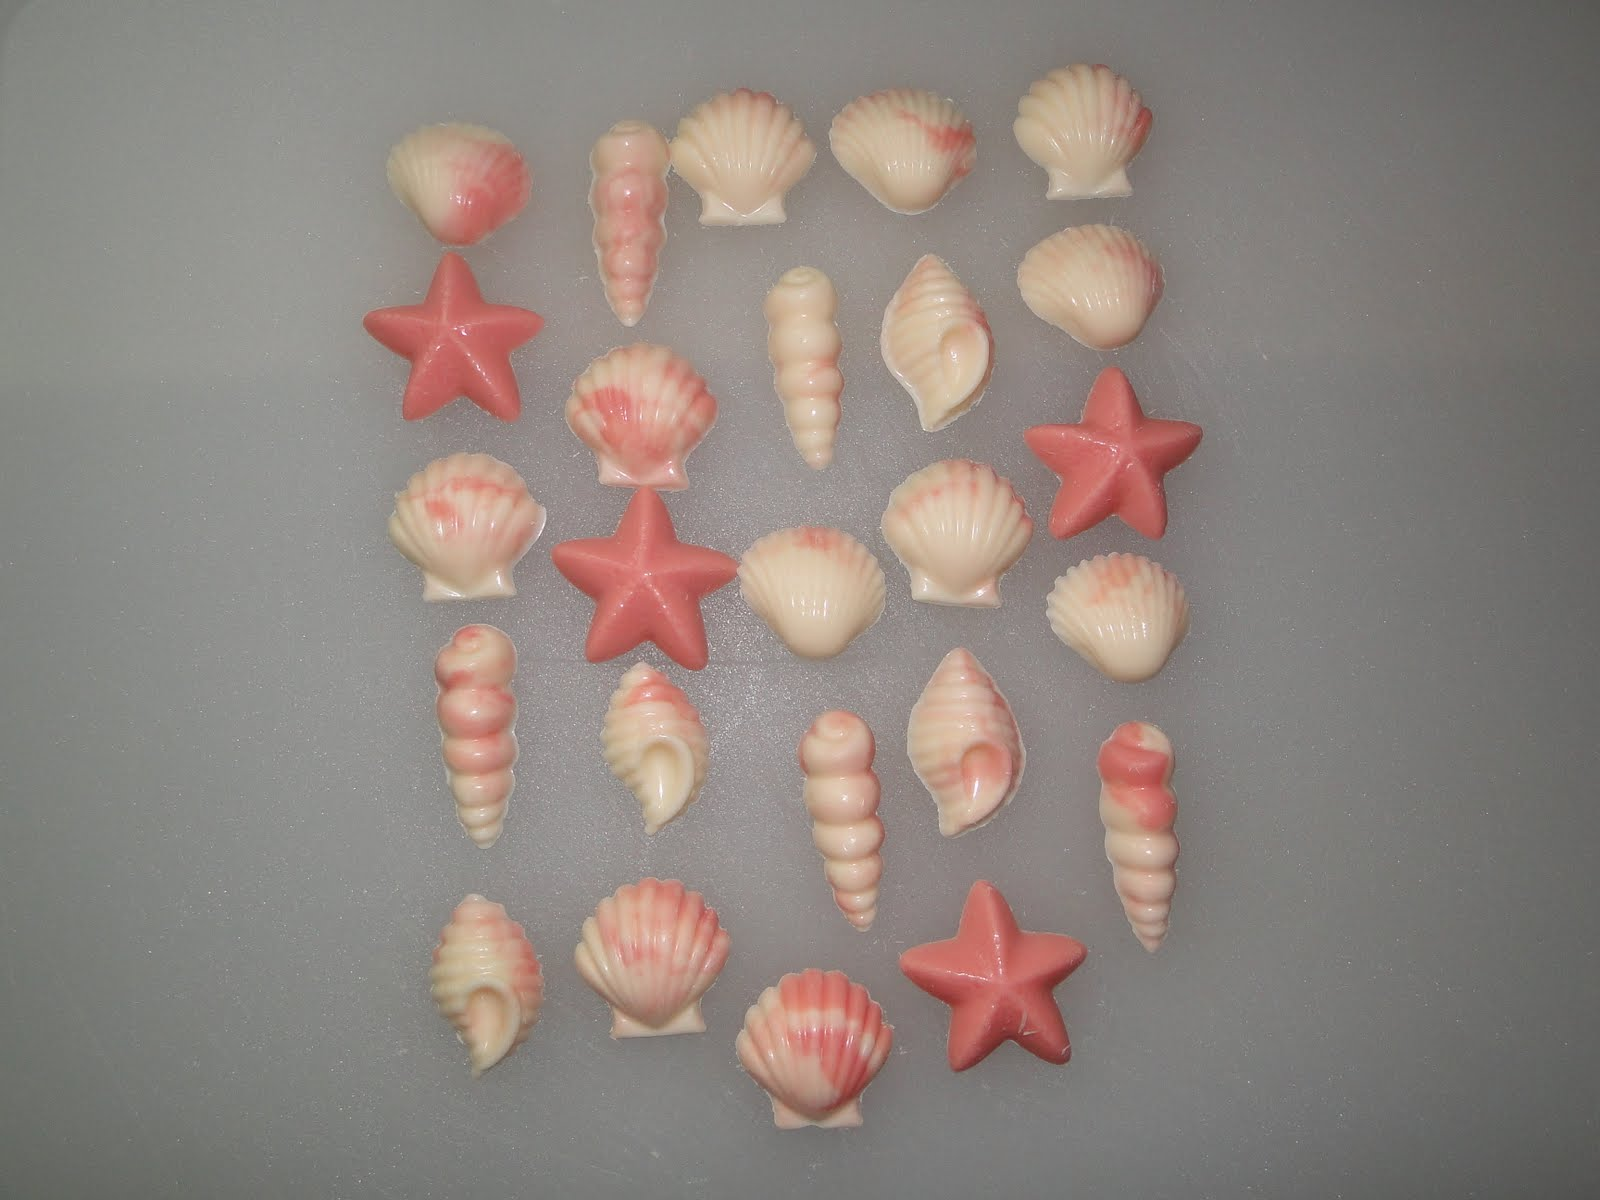 Cricut Sea Shell http://wdwmomdailyendeavor.blogspot.com/2010/07/candy-seashells-and-starfish.html